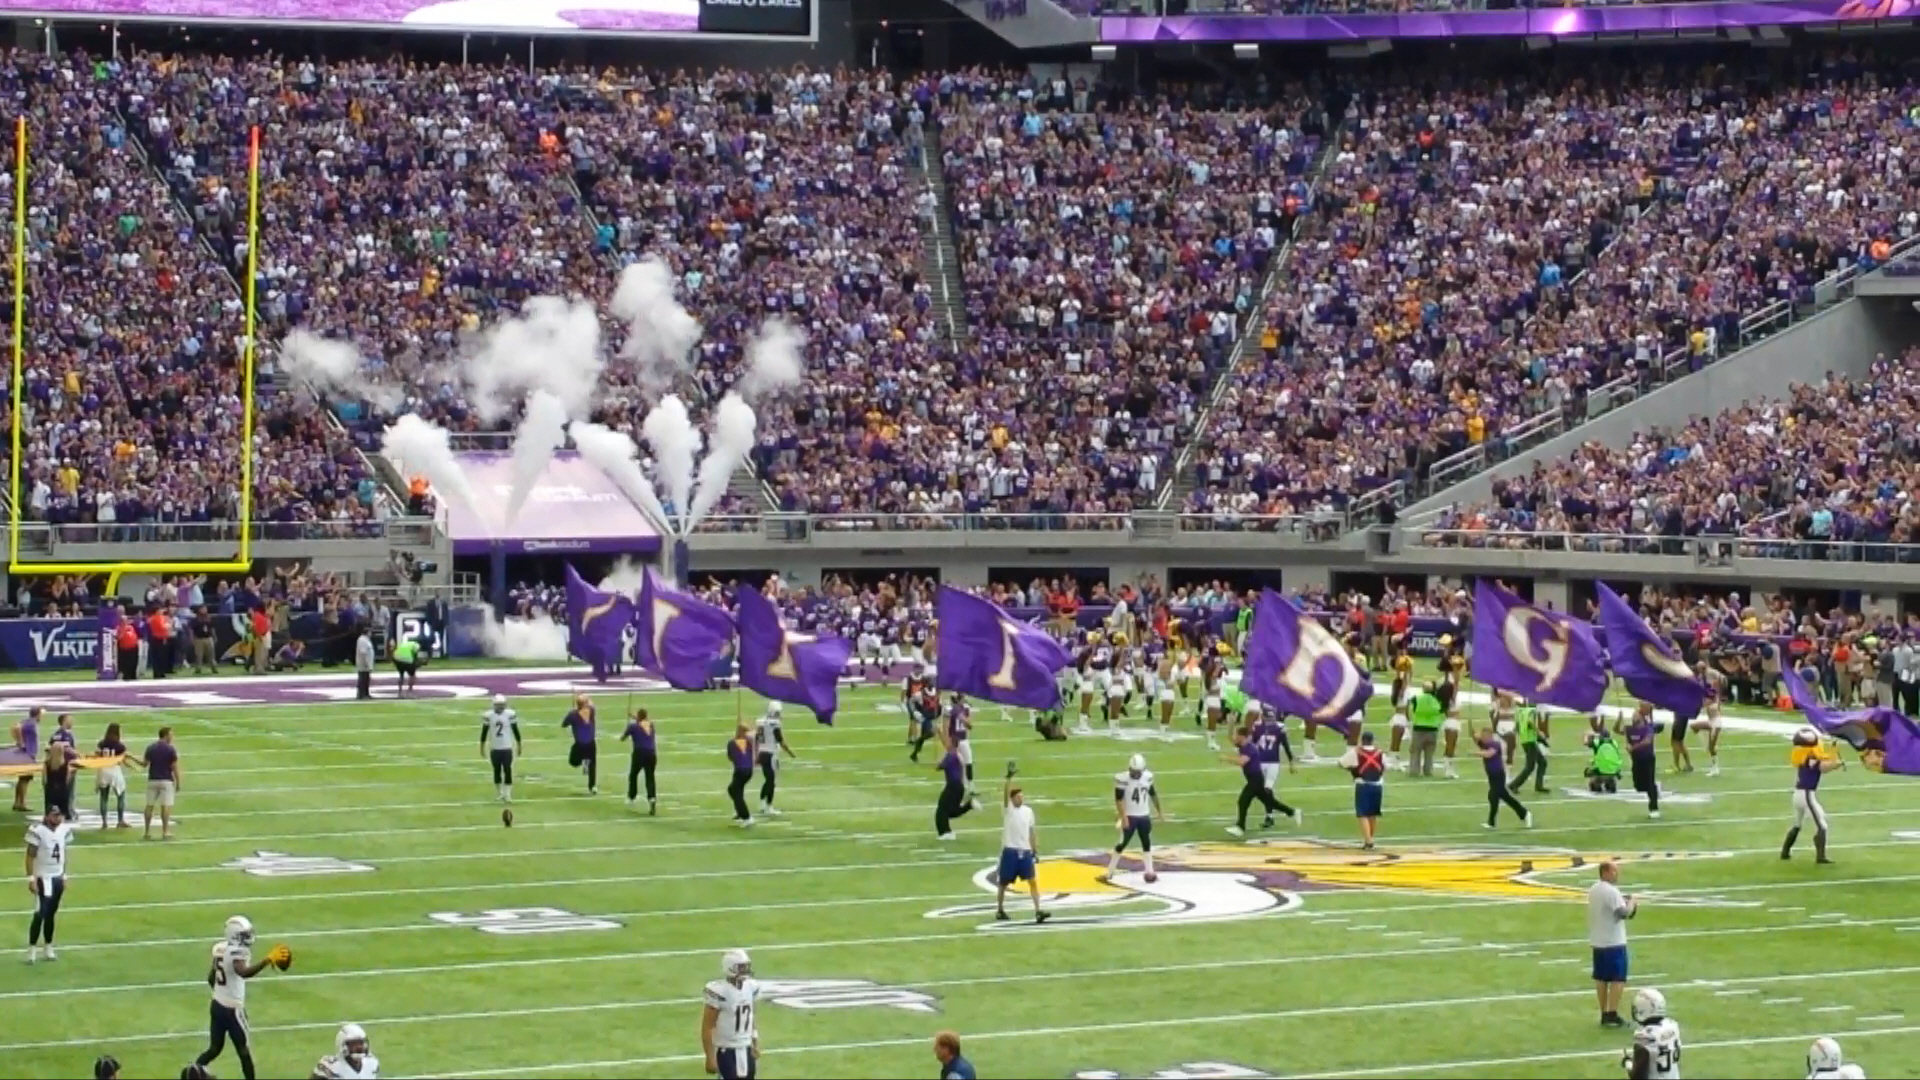 Minnesota Vikings U.S. Bank Stadium First Game - Flags